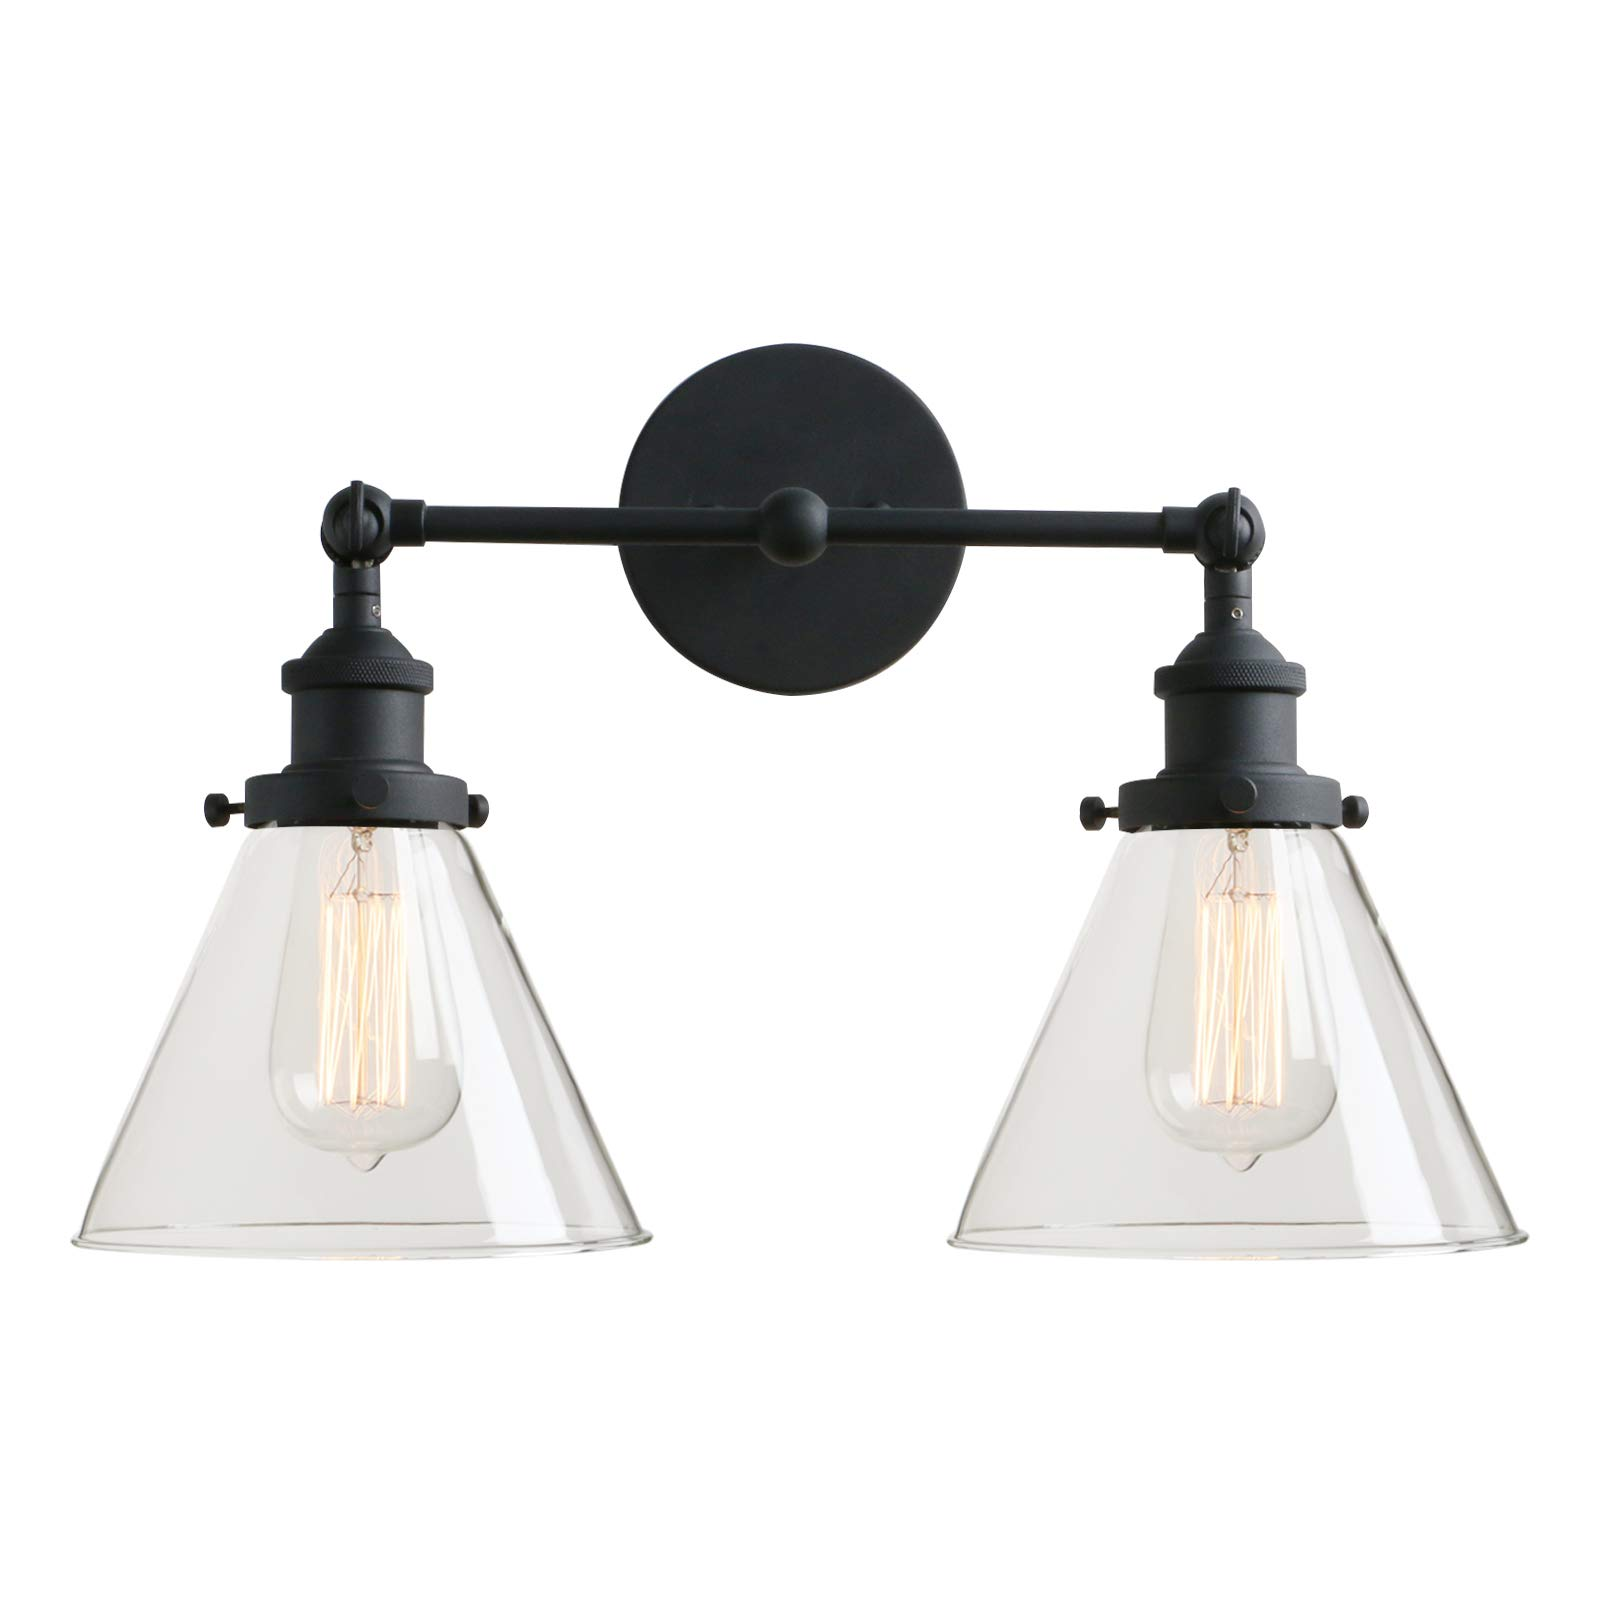 Permo Vintage Industrial Antique 2-Lights Wall Sconces with Dual Funnel Clear Glass Shade (Black)